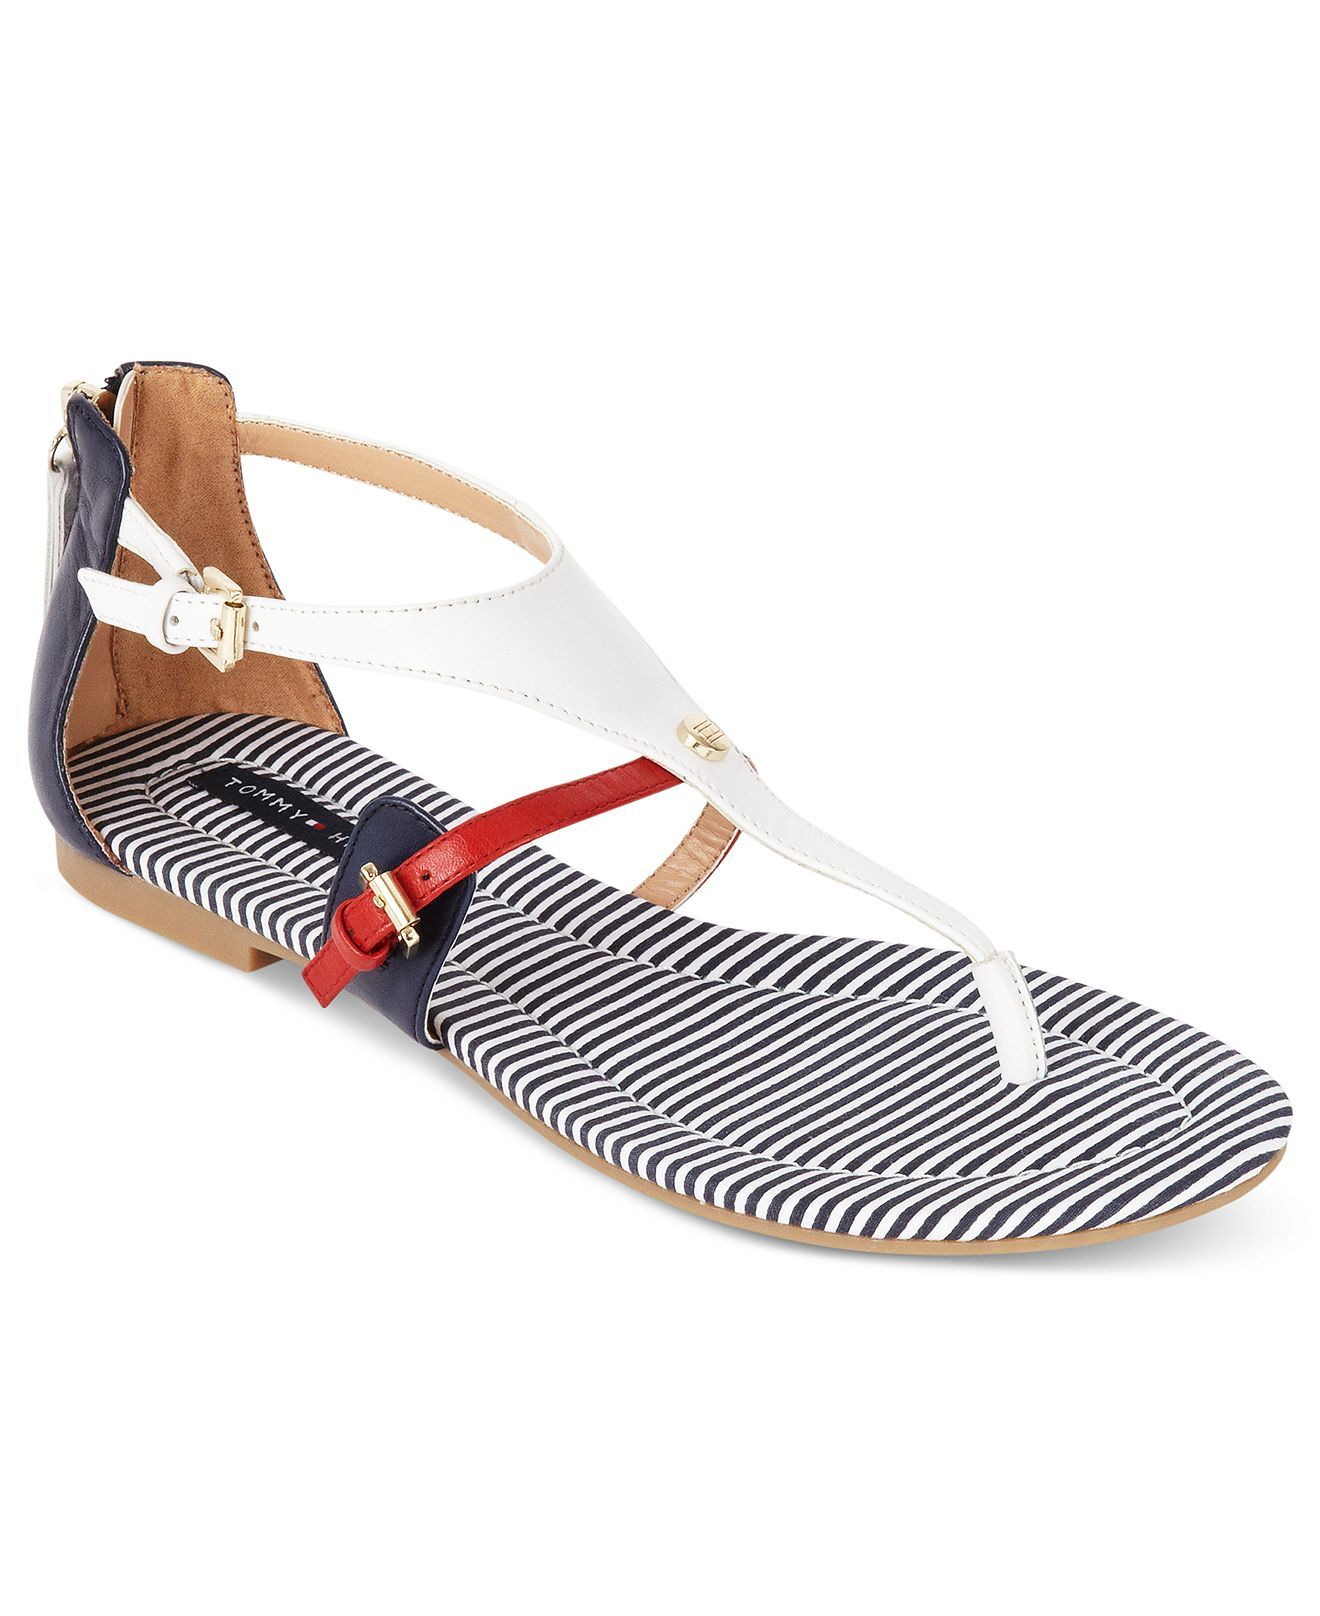 Tommy Hilfiger Baran Flat Thong Sandals - Tommy Hilfiger - Shoes - Macy's